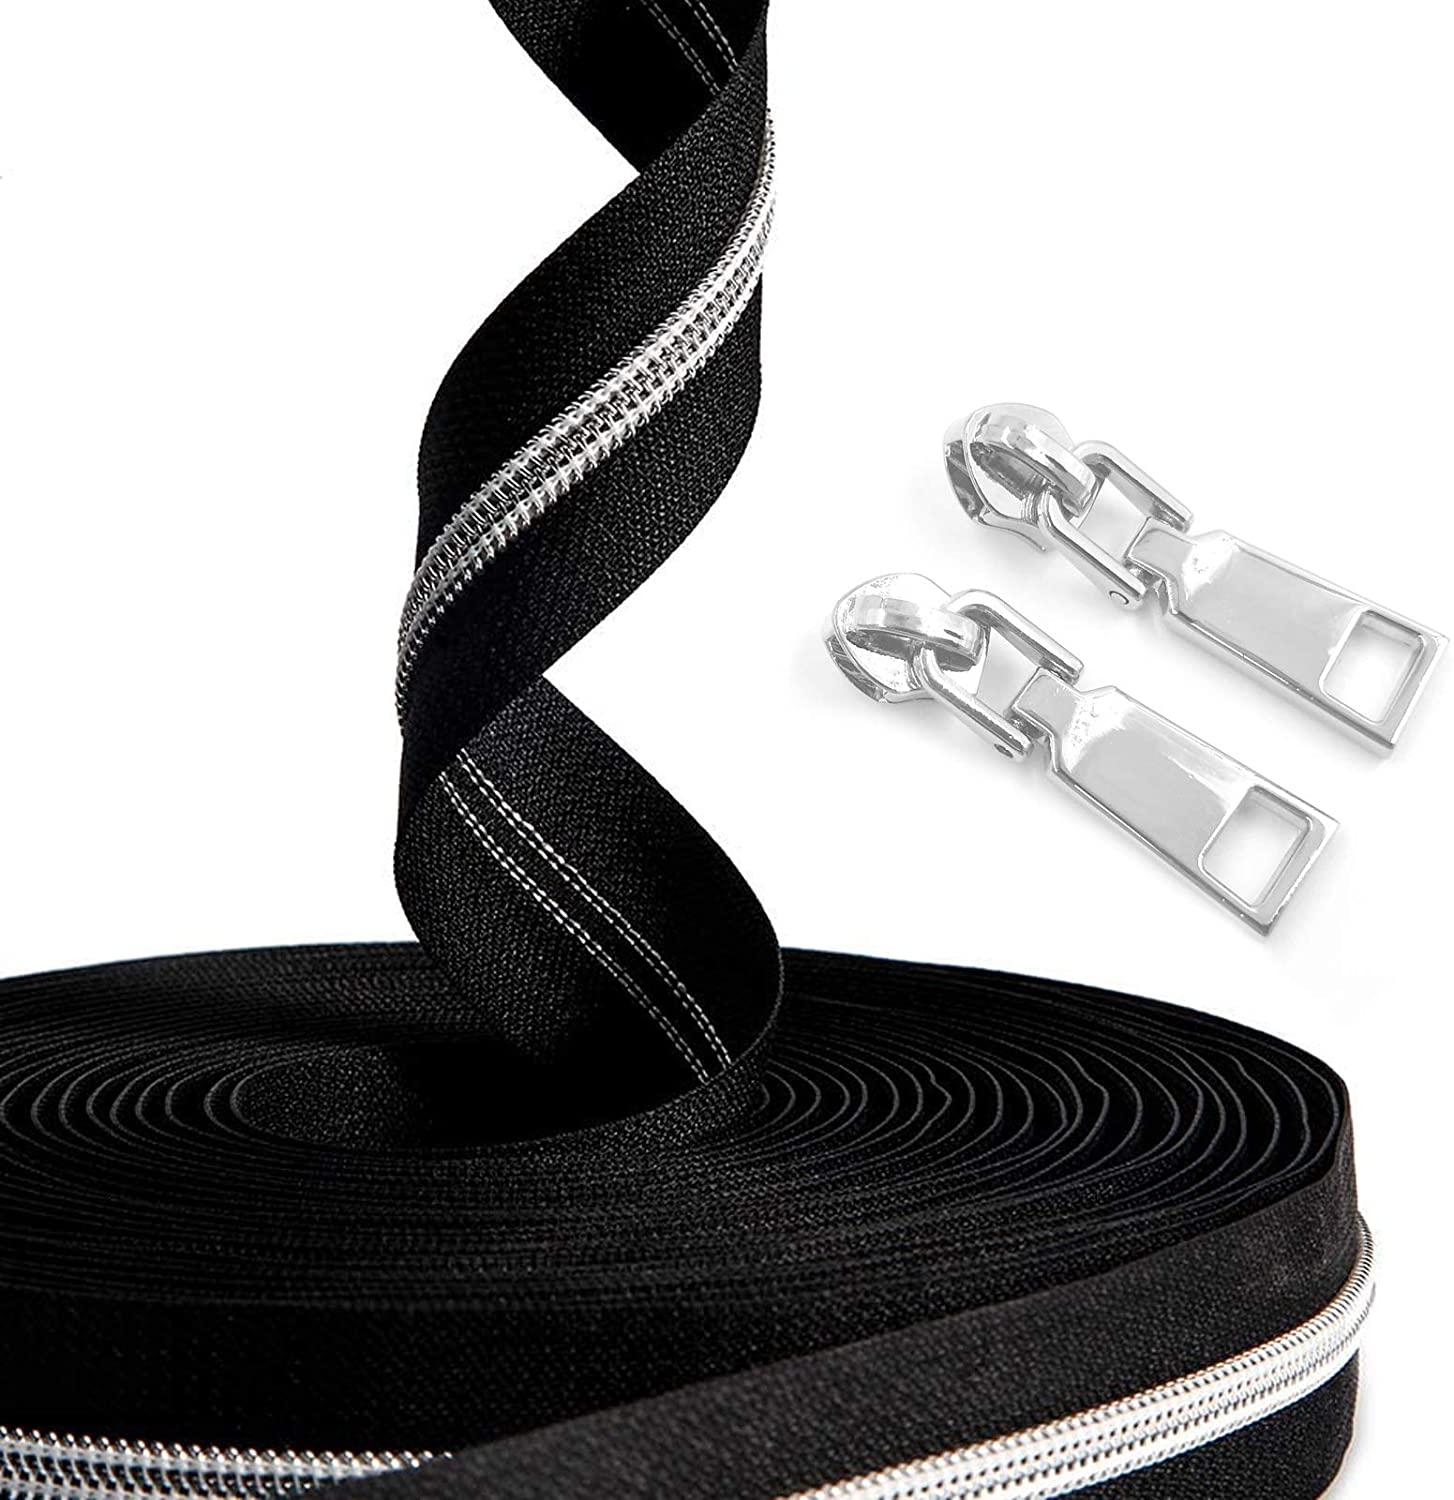 SBest Nylon Zippers #5 10 Yards Sewing Zippers Bulk DIY Zipper by The Yard Bulk with 20PCS Slider-Long Zippers for Tailor Sewing Crafts Bag (Silver Teeth Black Tape)